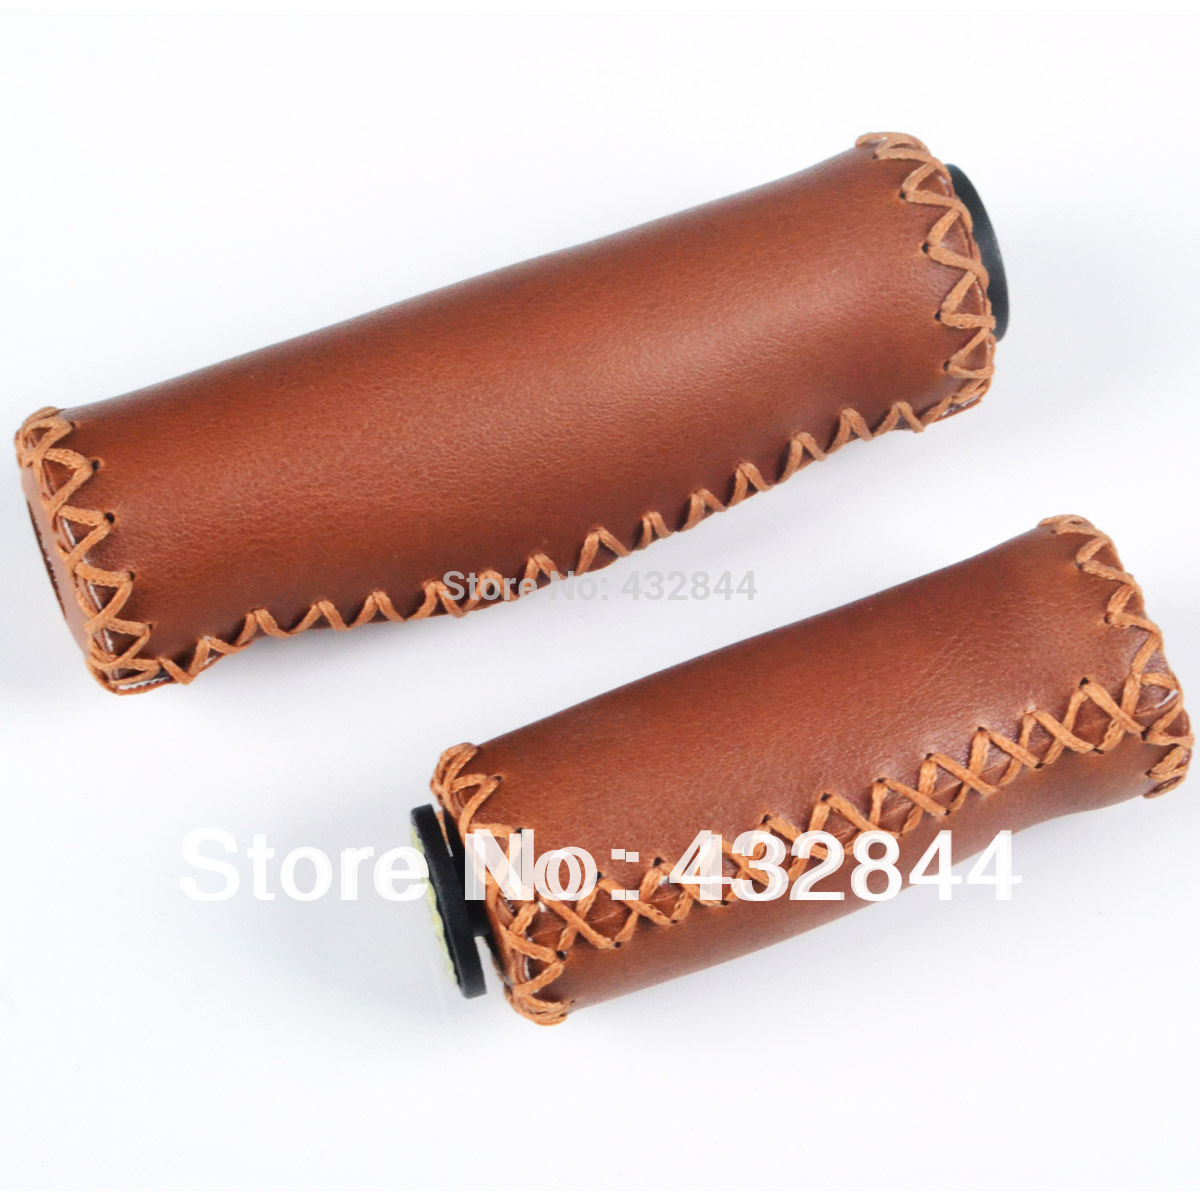 Mountain Bike Bicycle Cattlehide Brown Handlebar Grips MTB handle cover 127mm 90mm part shipping free